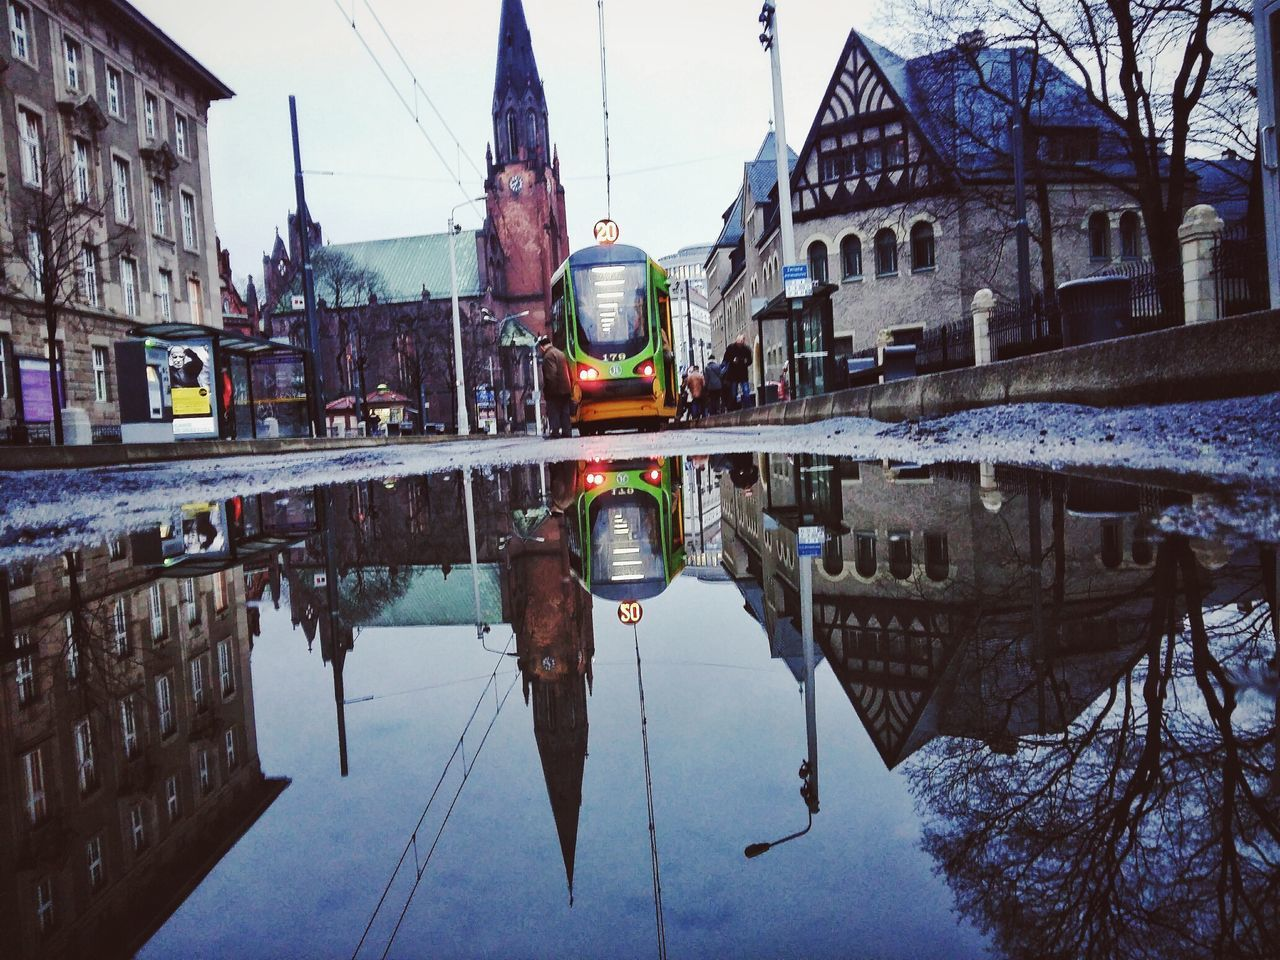 architecture, building exterior, built structure, reflection, transportation, mode of transport, outdoors, water, day, winter, city, nautical vessel, cold temperature, no people, clear sky, sky, puddle